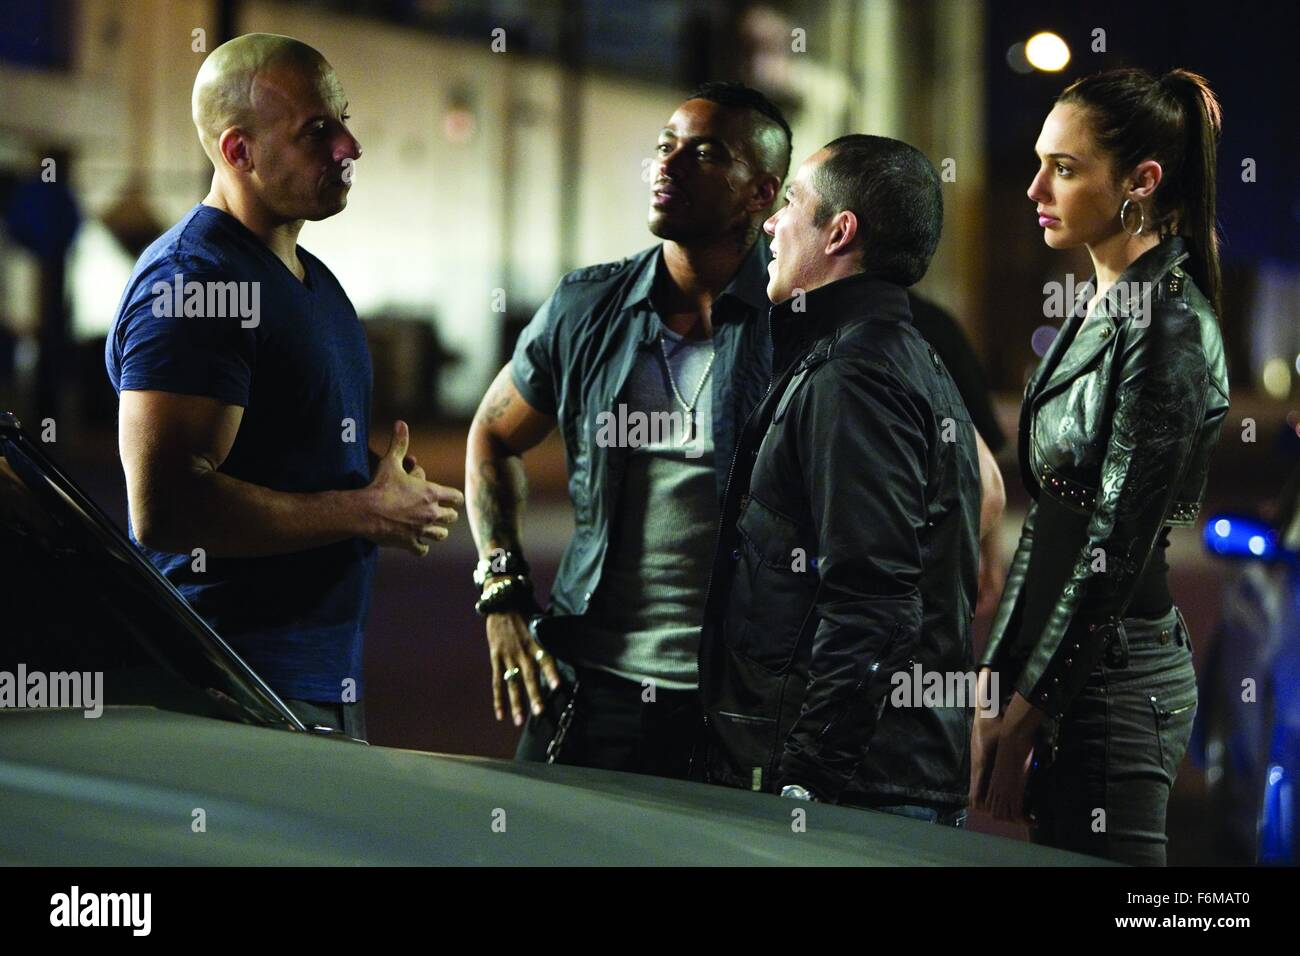 Fast & furious 7 release date in Sydney